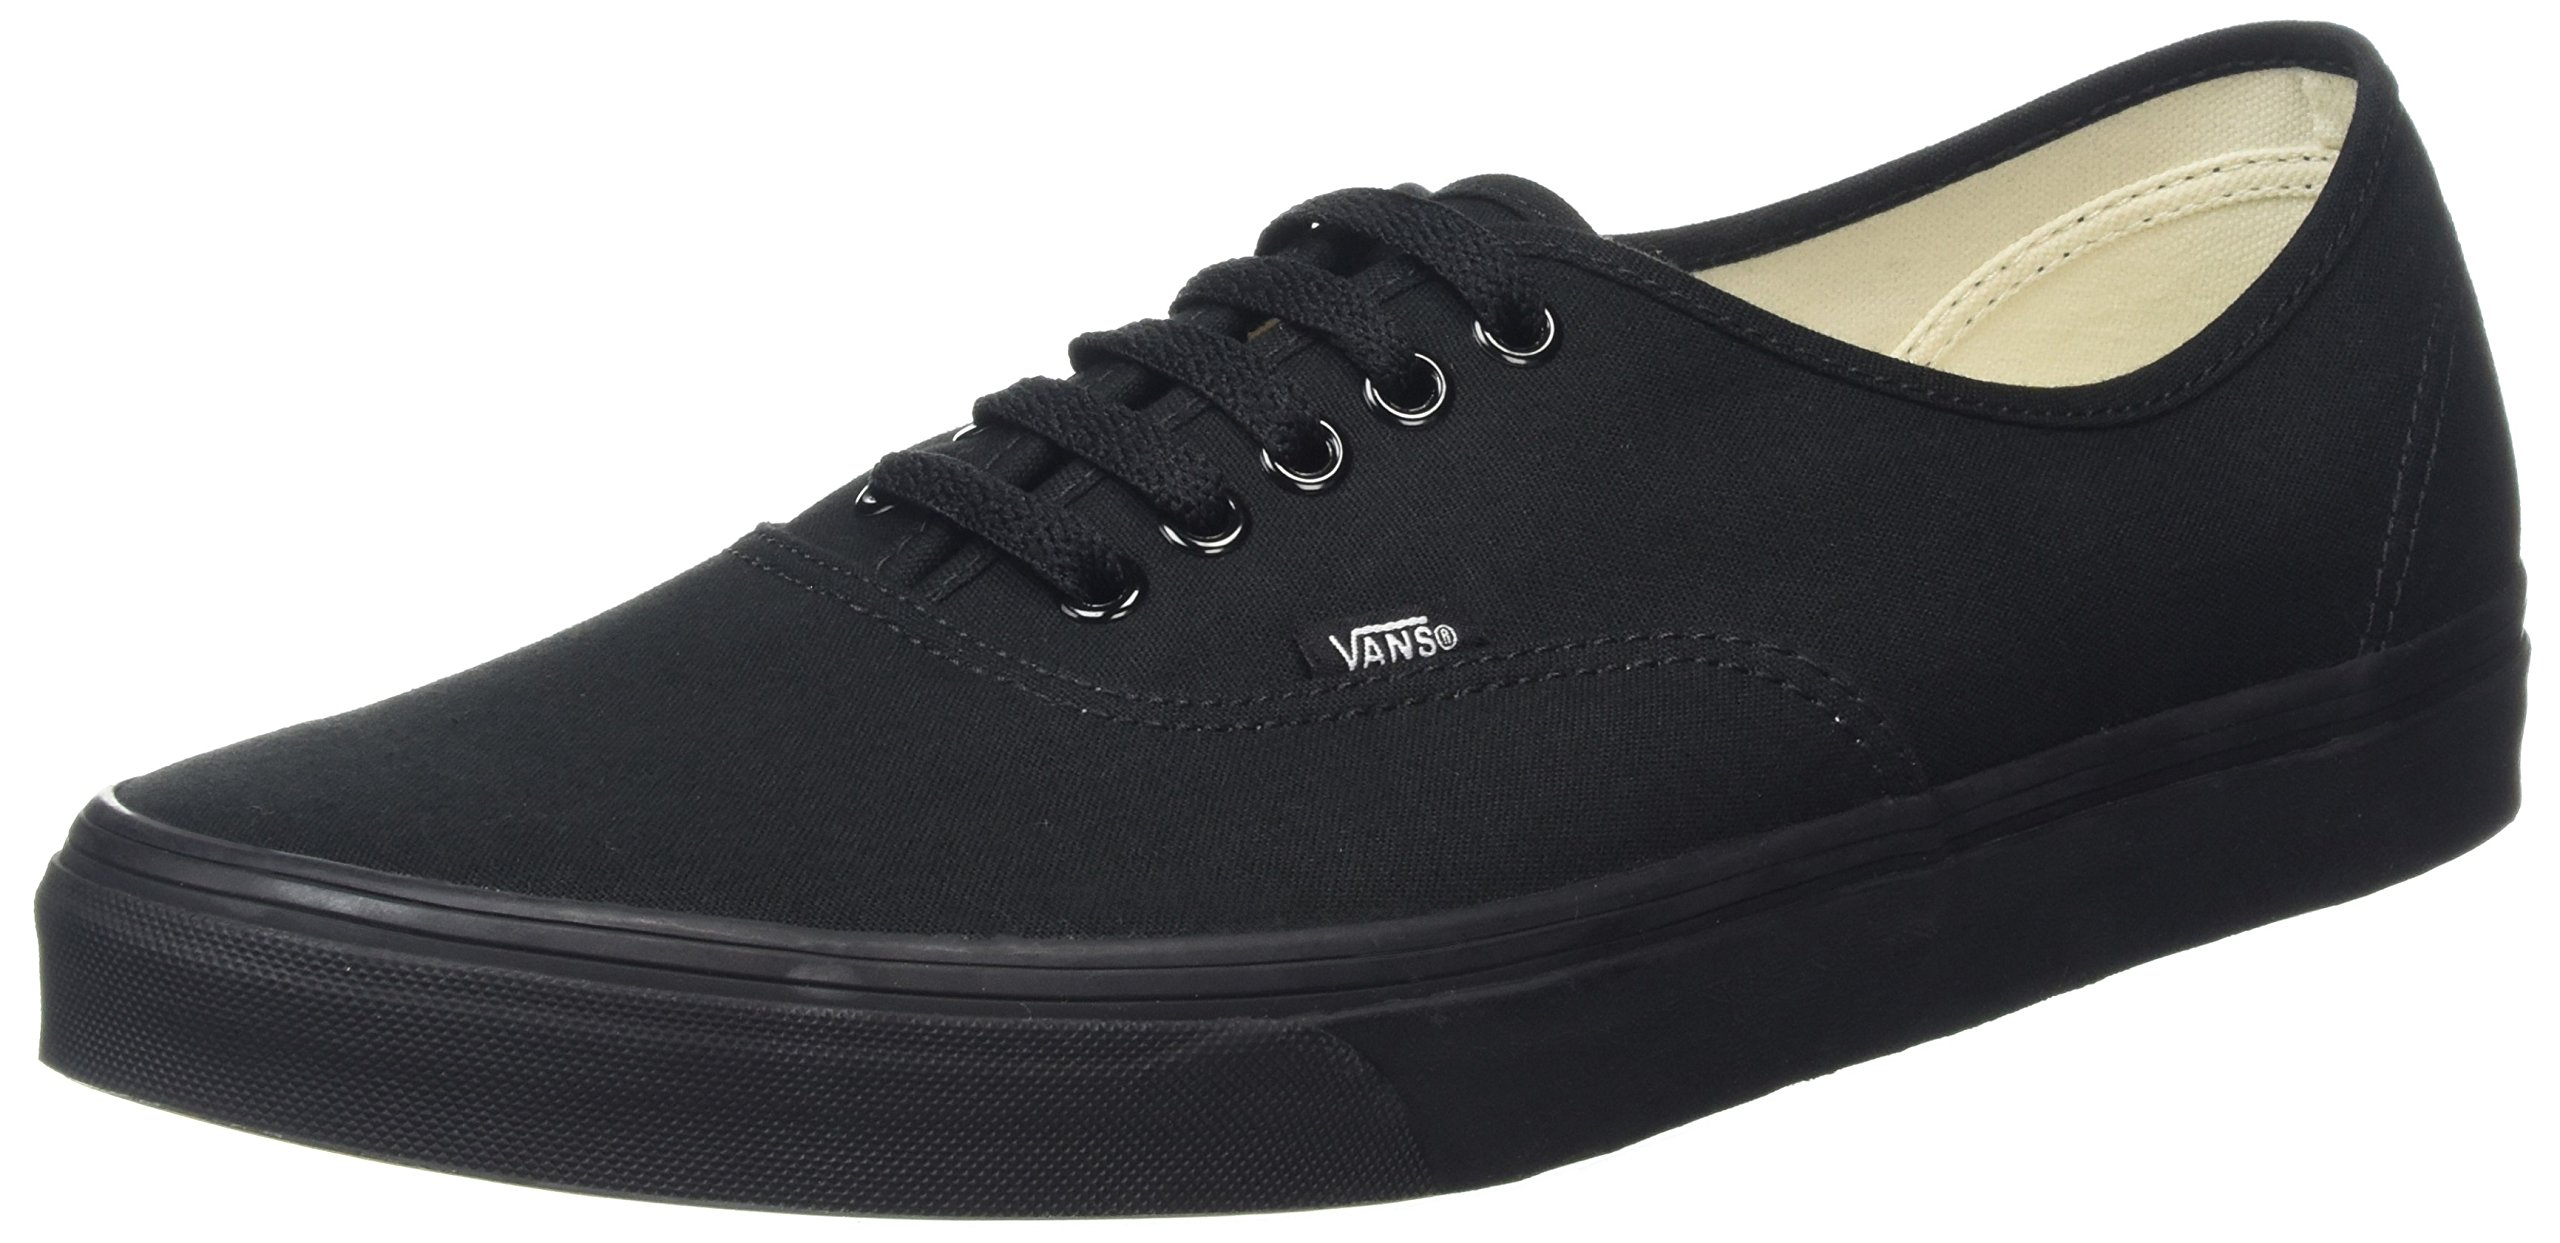 Vans Authentic(tm) Core Classics Black, 9 D(M) US